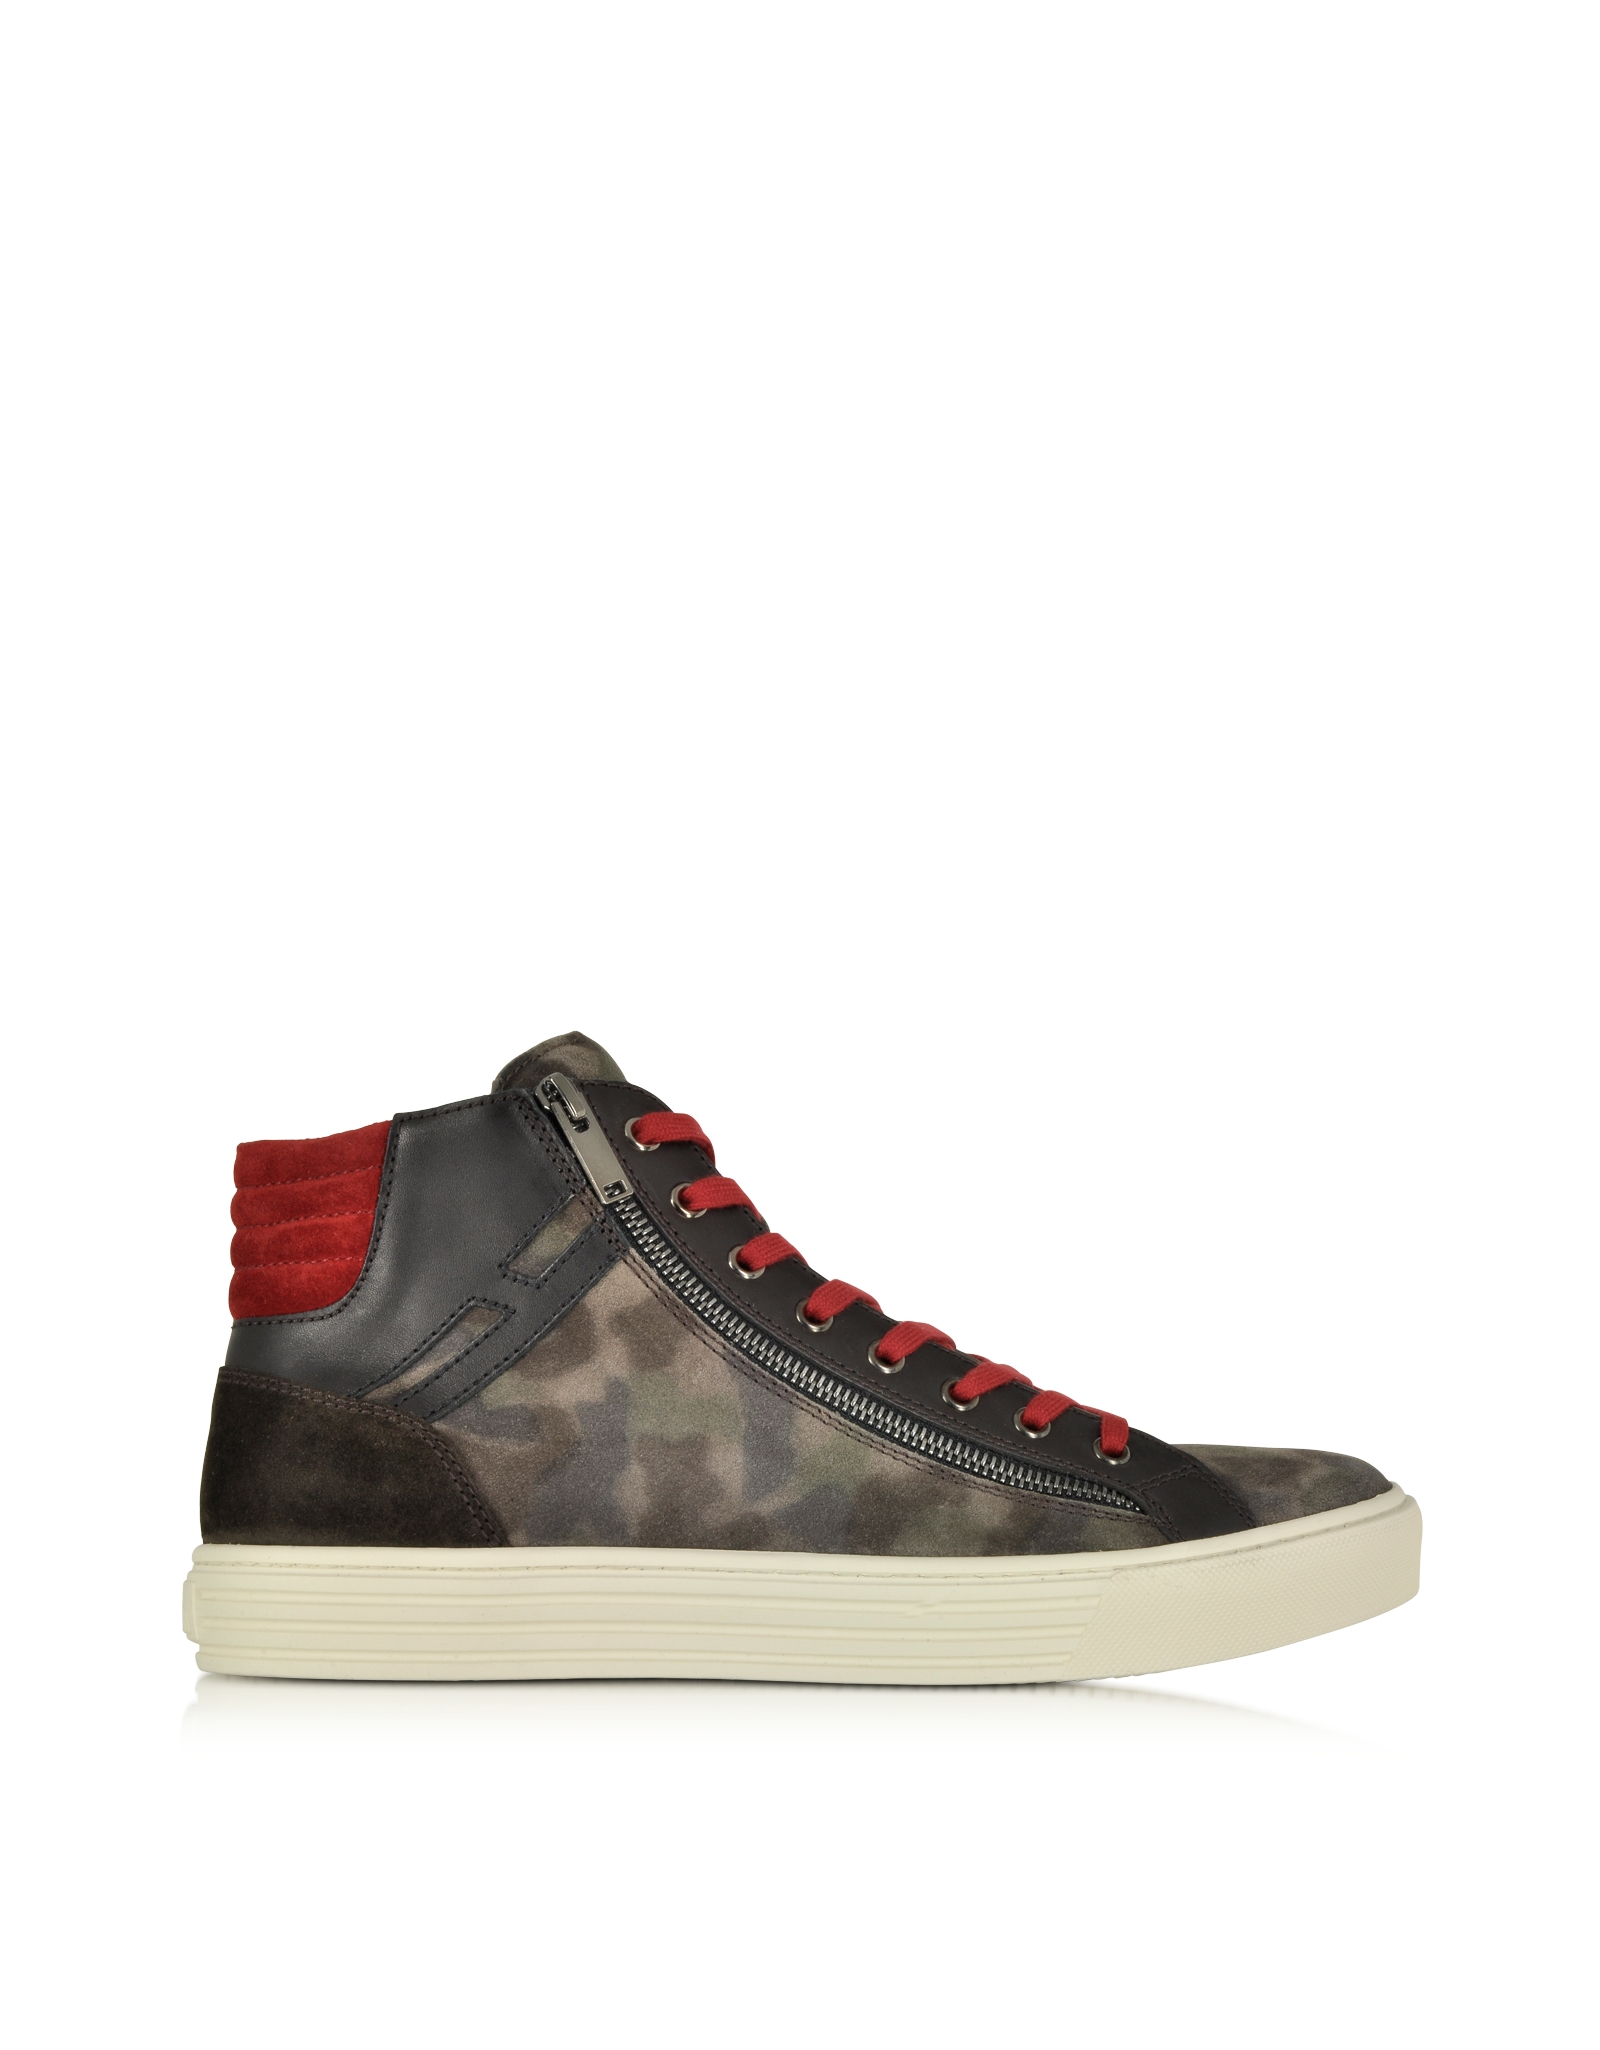 hogan rebel multicolor leather and suede high top sneaker for men lyst. Black Bedroom Furniture Sets. Home Design Ideas